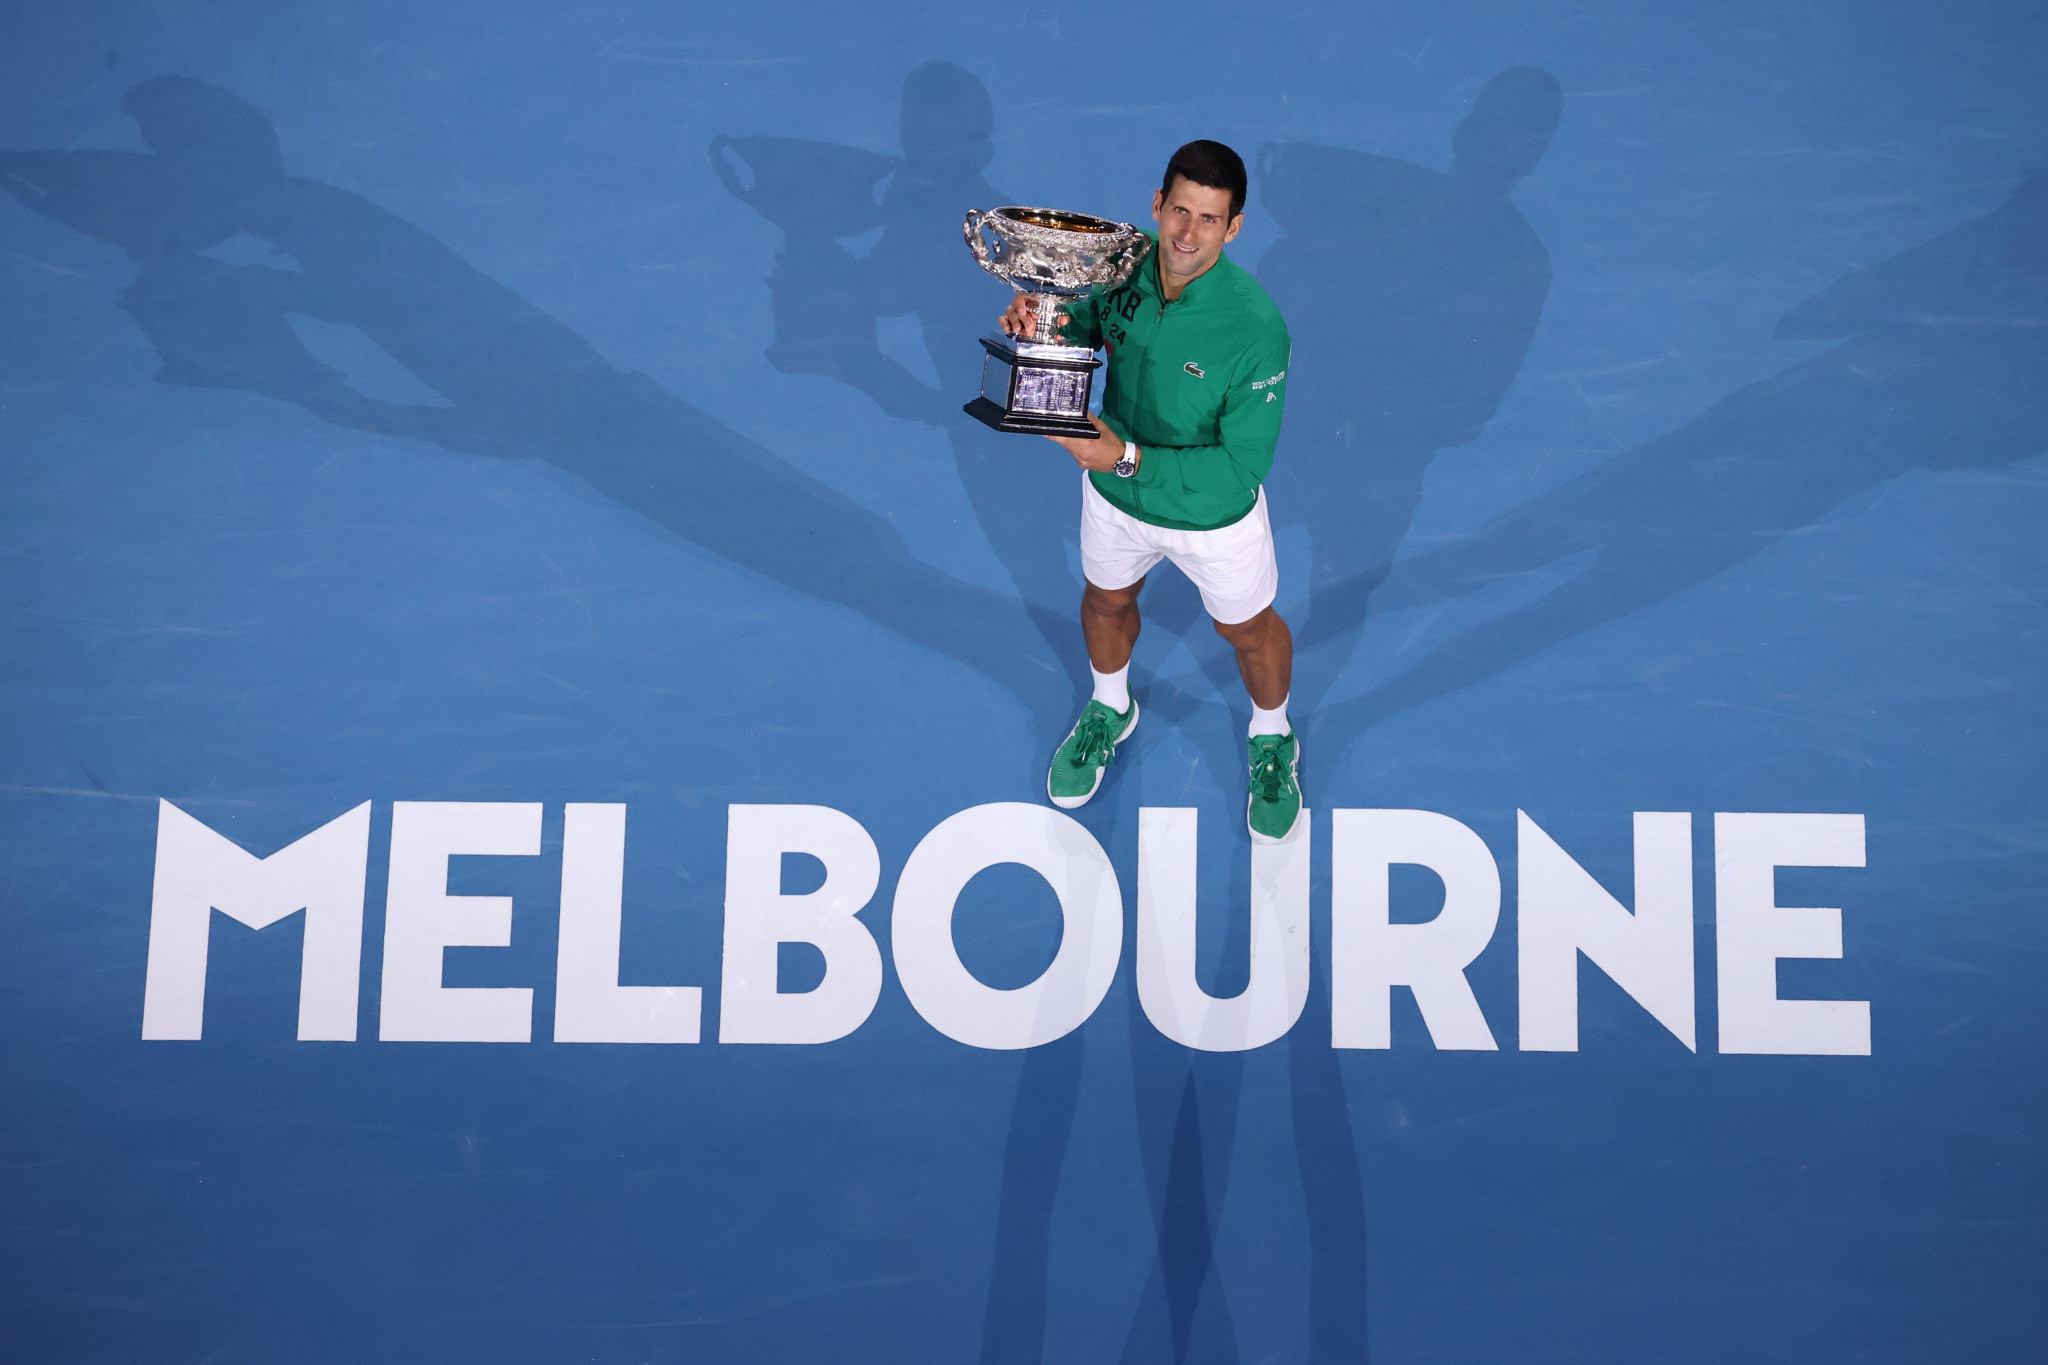 Three tournaments are set to take place in Melbourne before the city hosts the Australian Open in February ©Getty Images